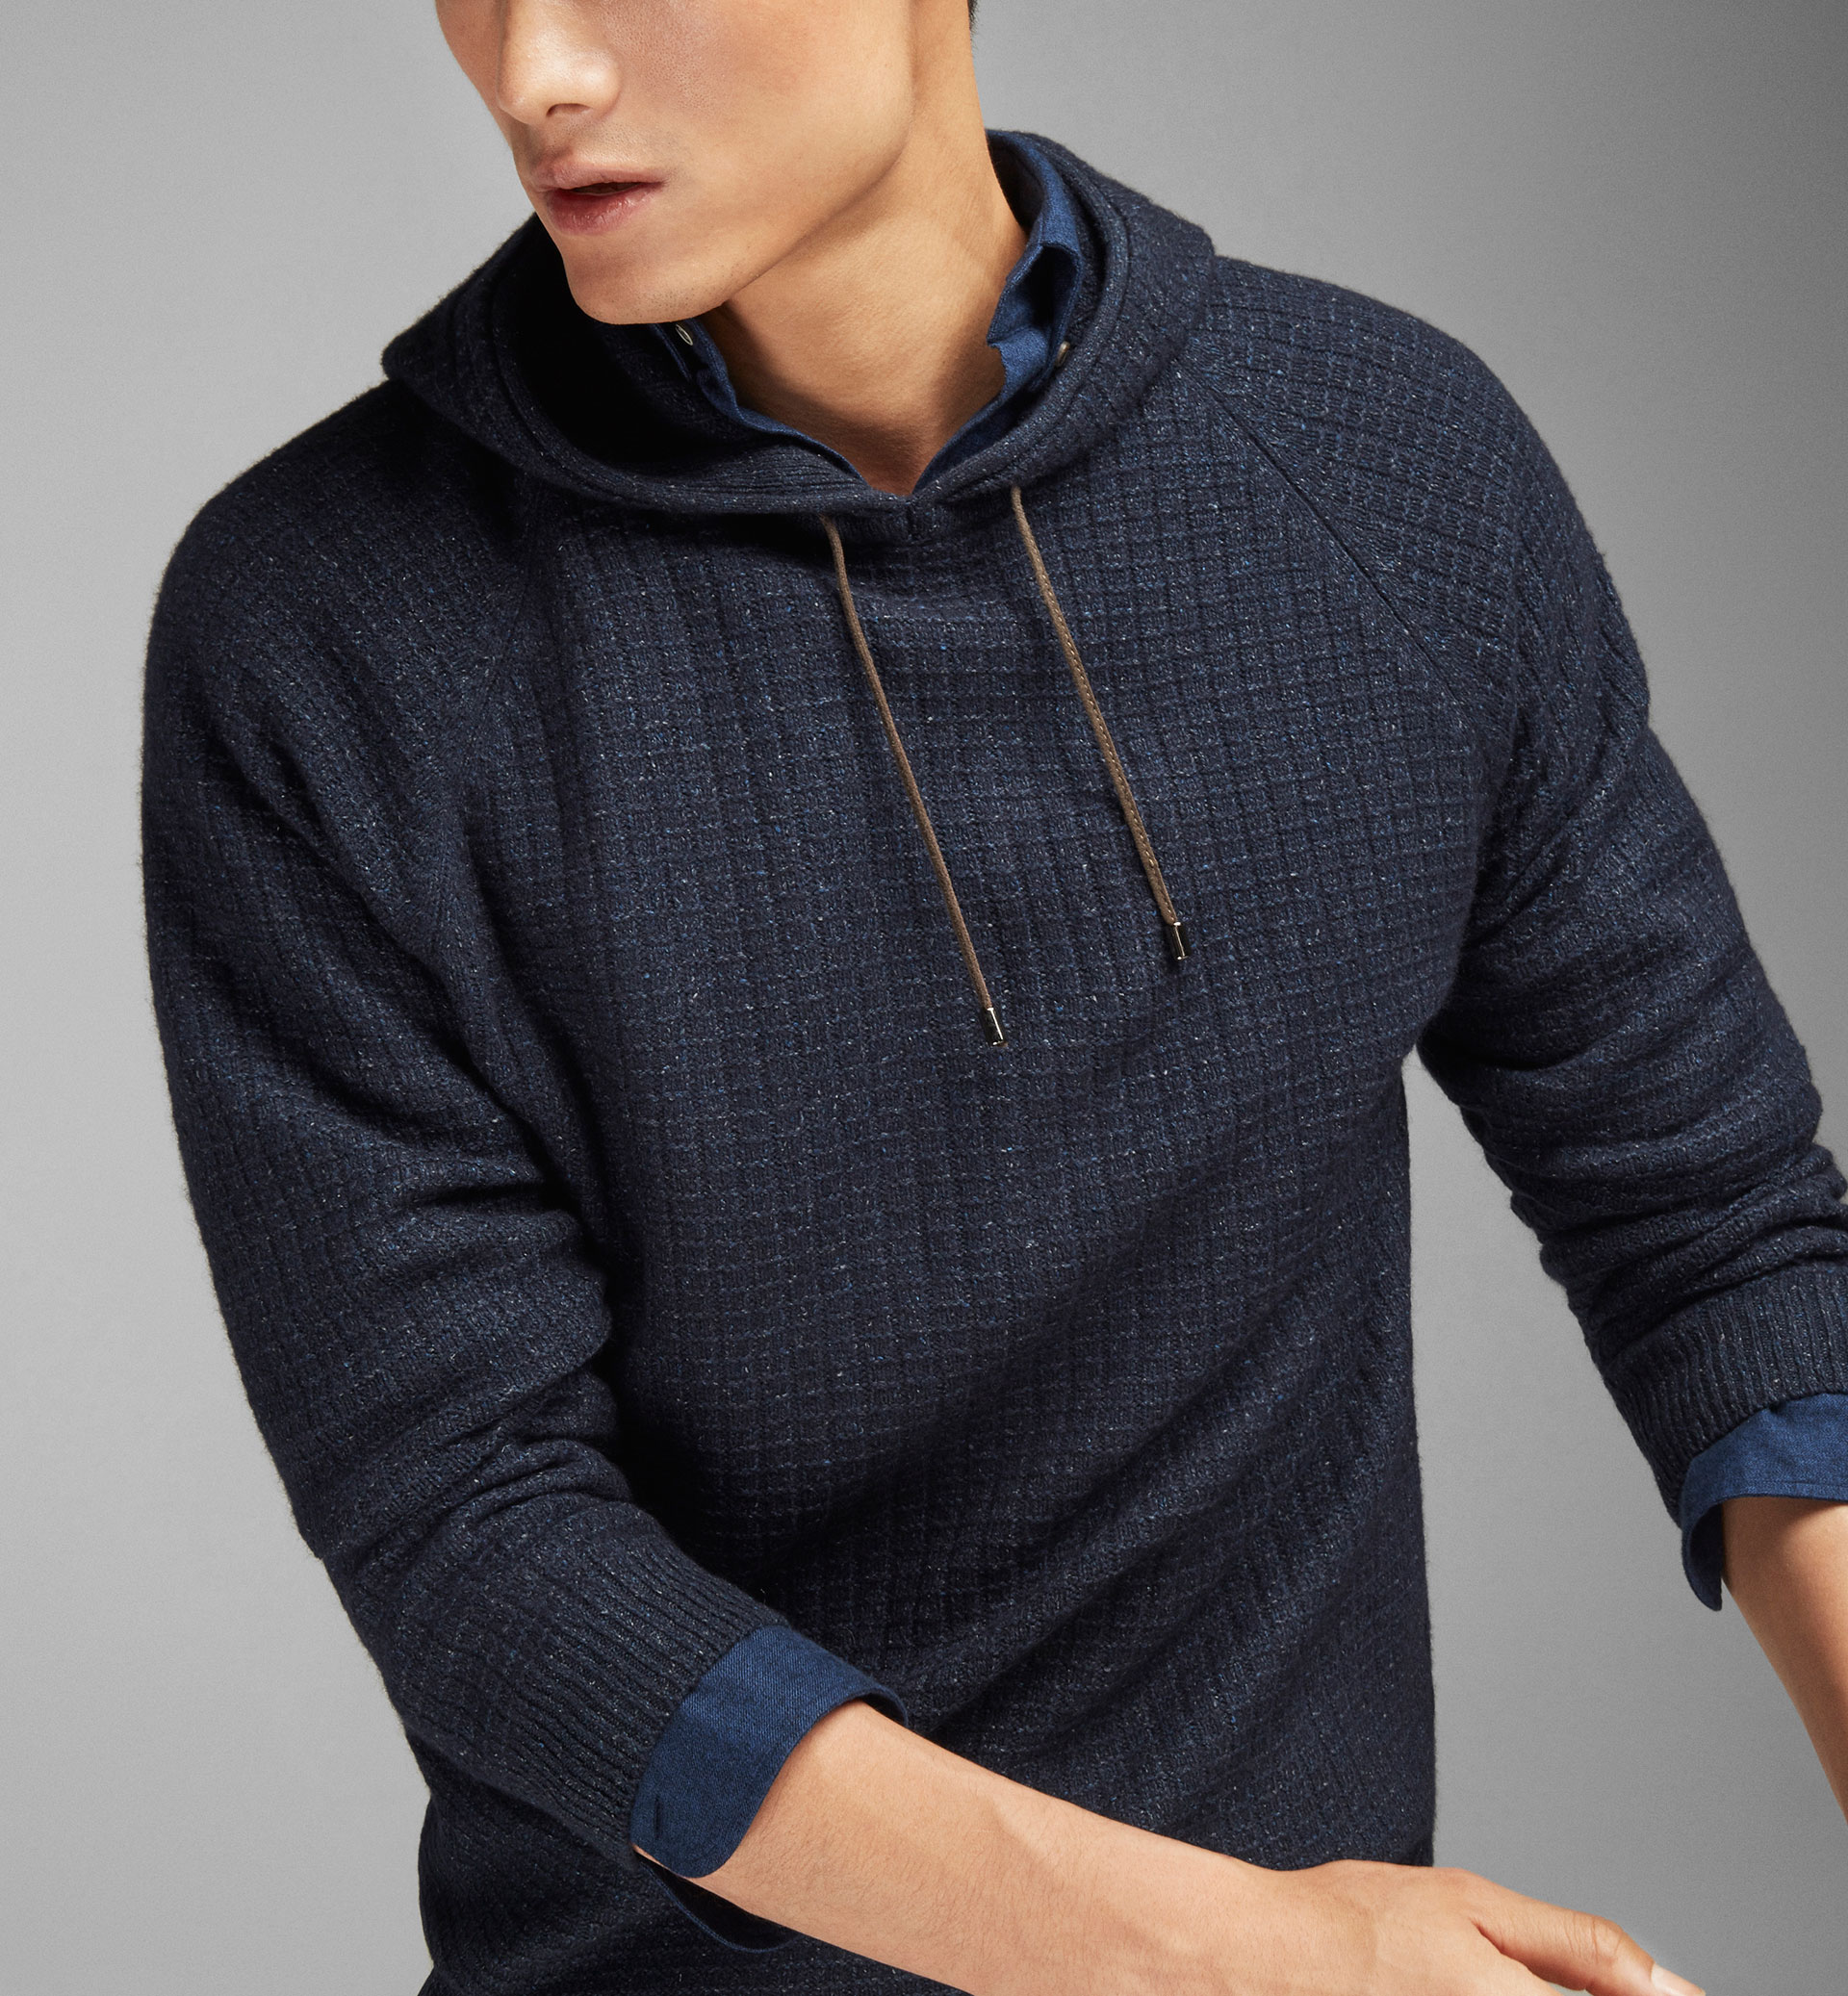 TEXTURED WEAVE HOODED SWEATER